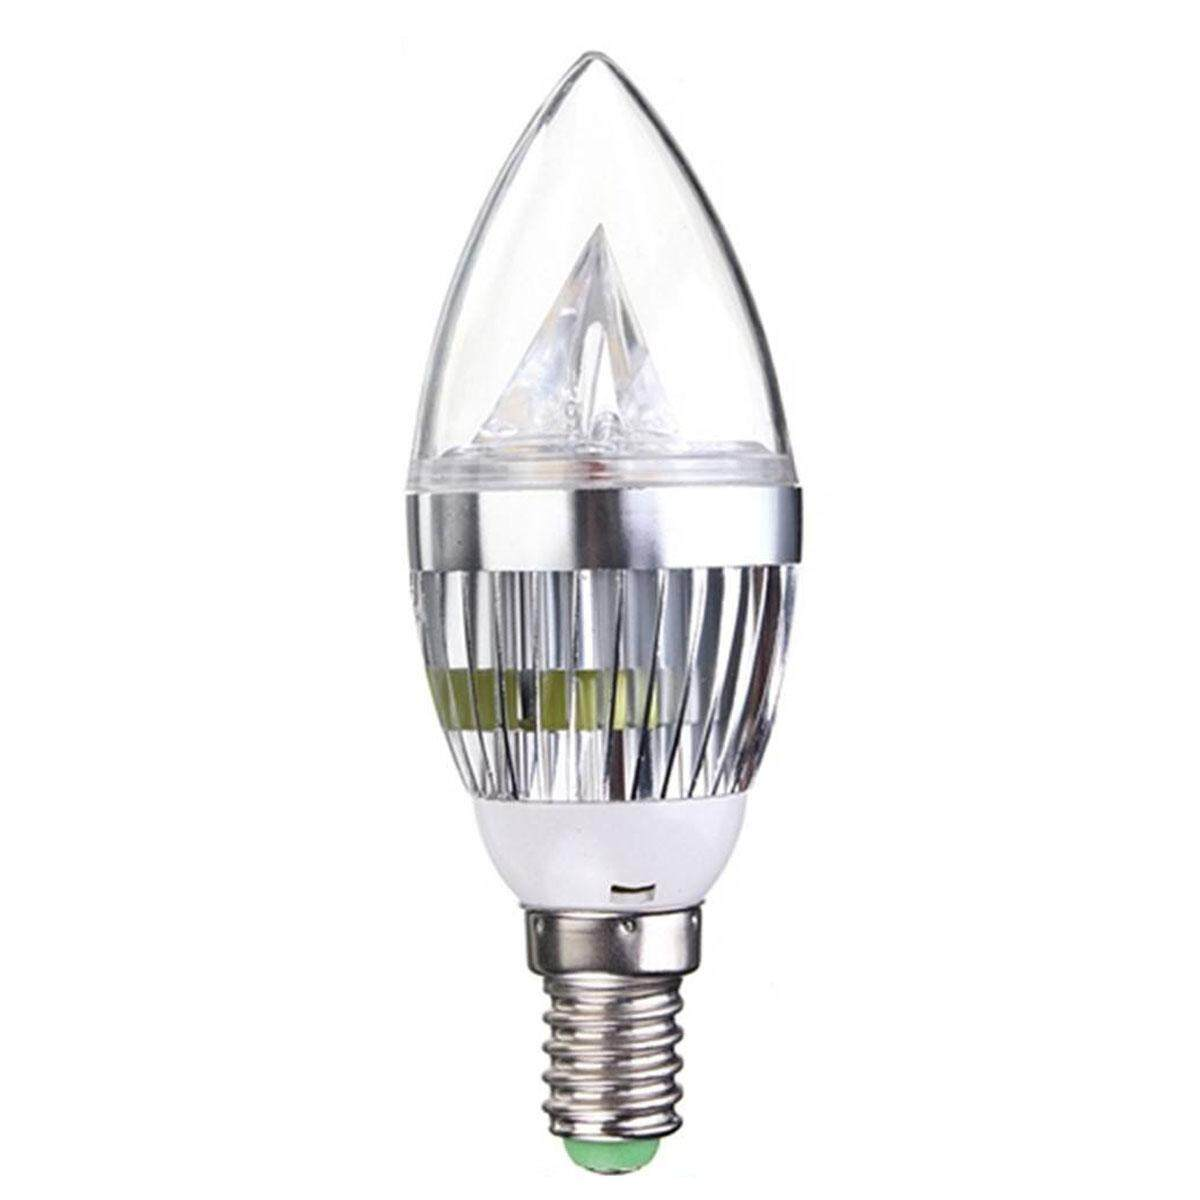 6x E14 4.5W LED Candle Bulbs Warm White Non Dimmable Replace 40W Incandescent Bulb Lamp 550LM 3 SMD Chandeliers Wall Light Silver Shell - intl